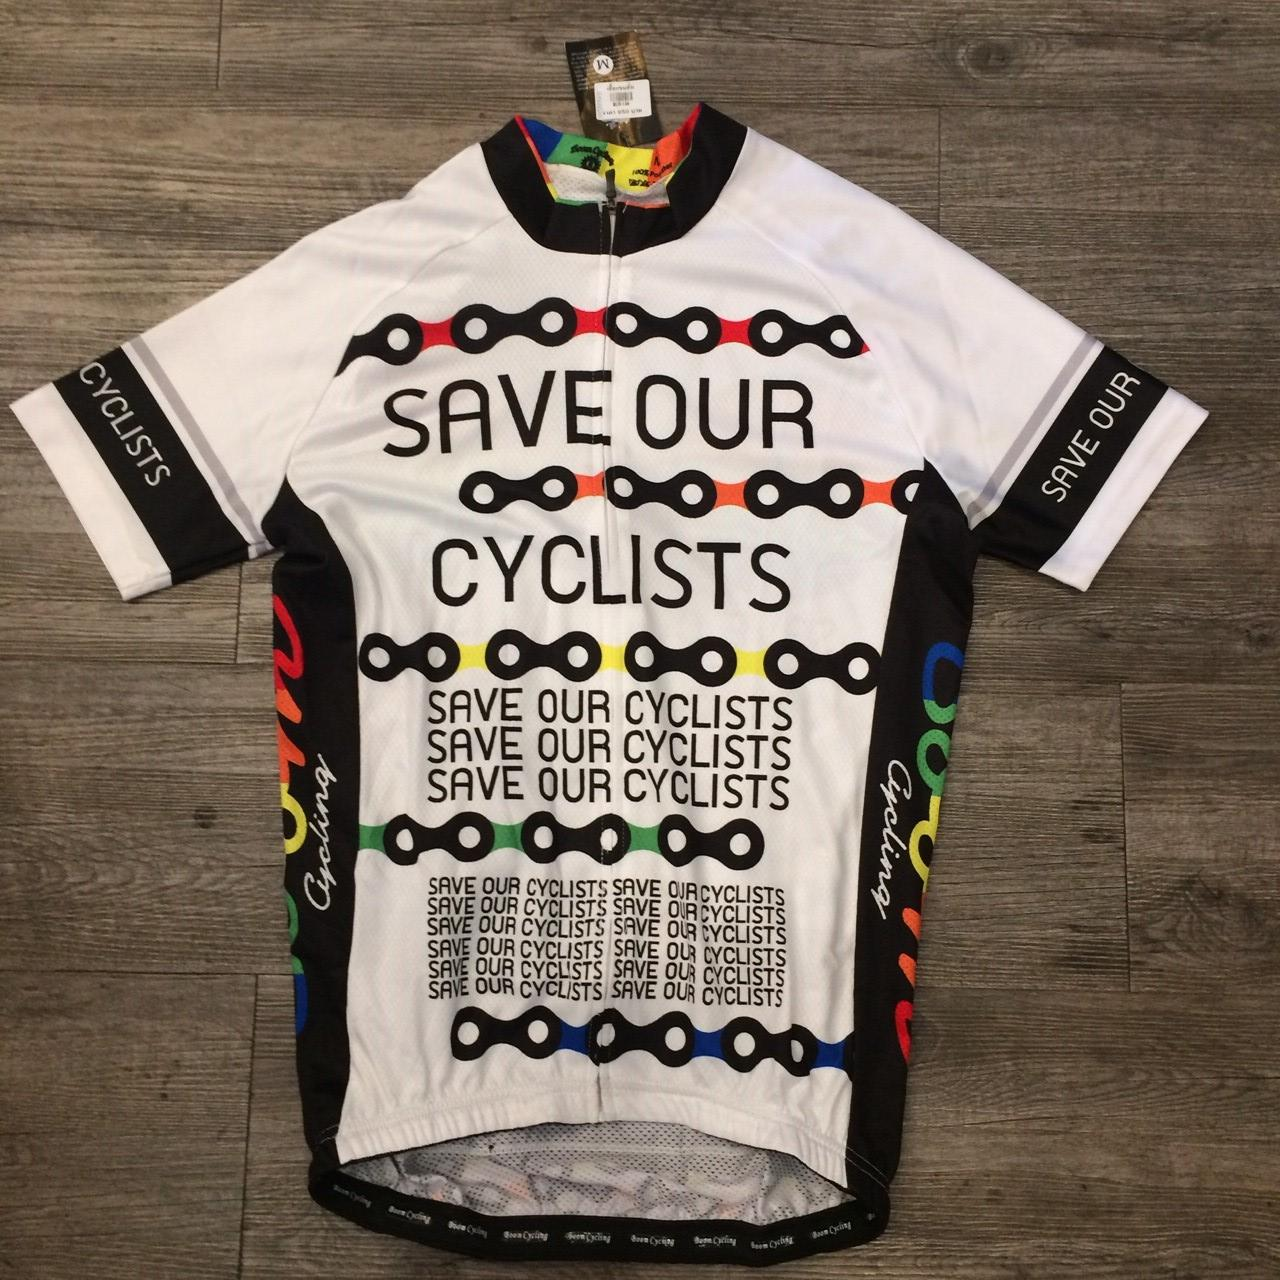 BCR-149 SAVE OUR CYCLISTS M""